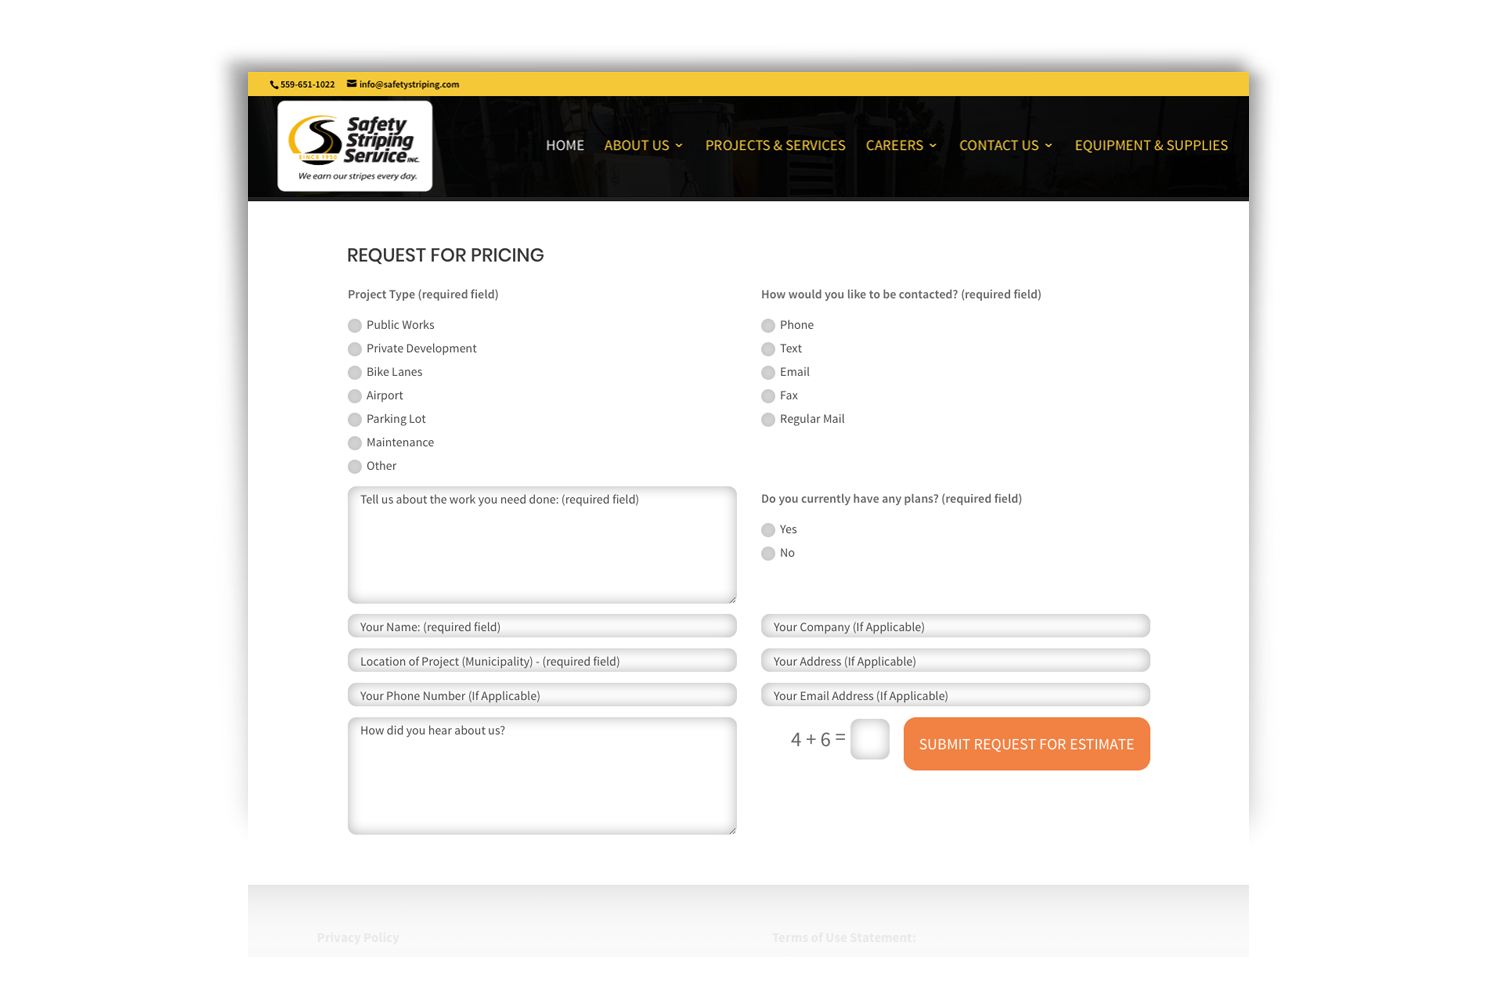 Safety Striping Service Website, contact form by DMI Agency_branding update and new website